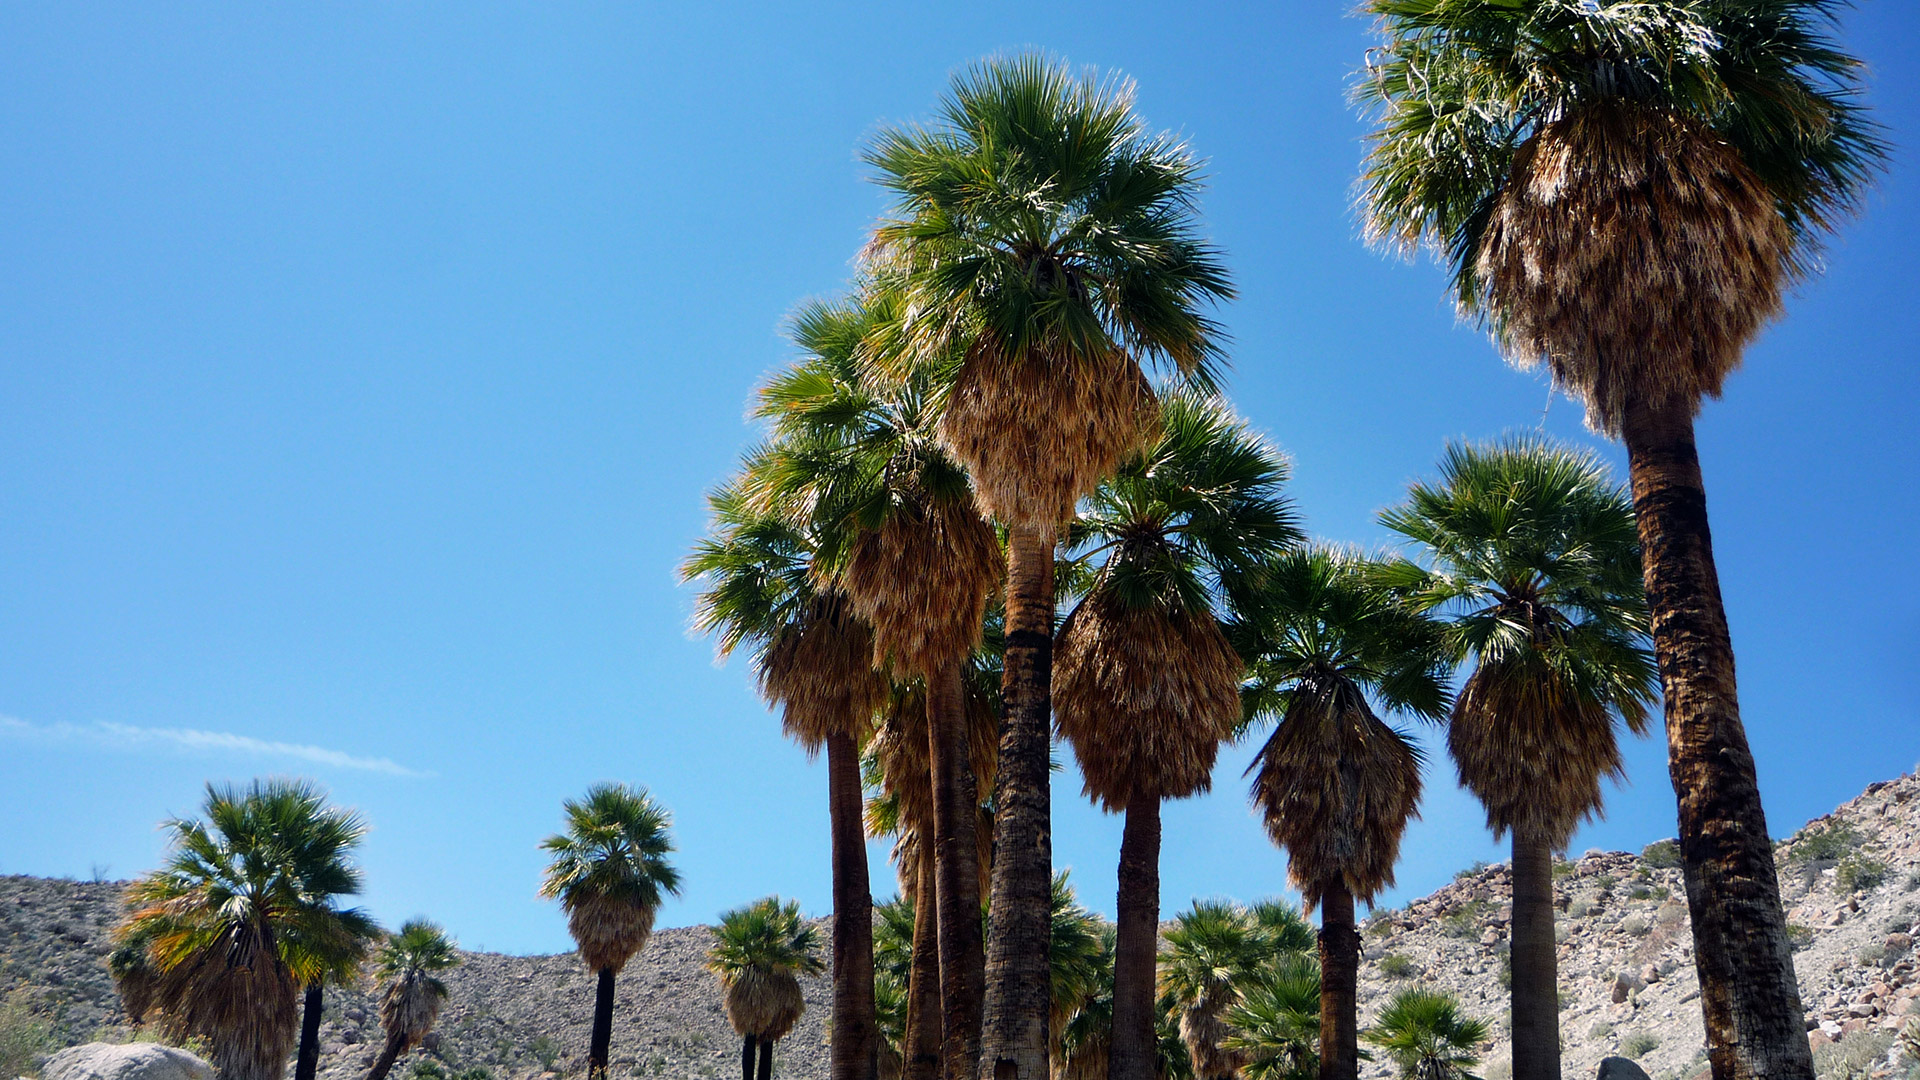 Palm trees in Borrego Palm Canyon